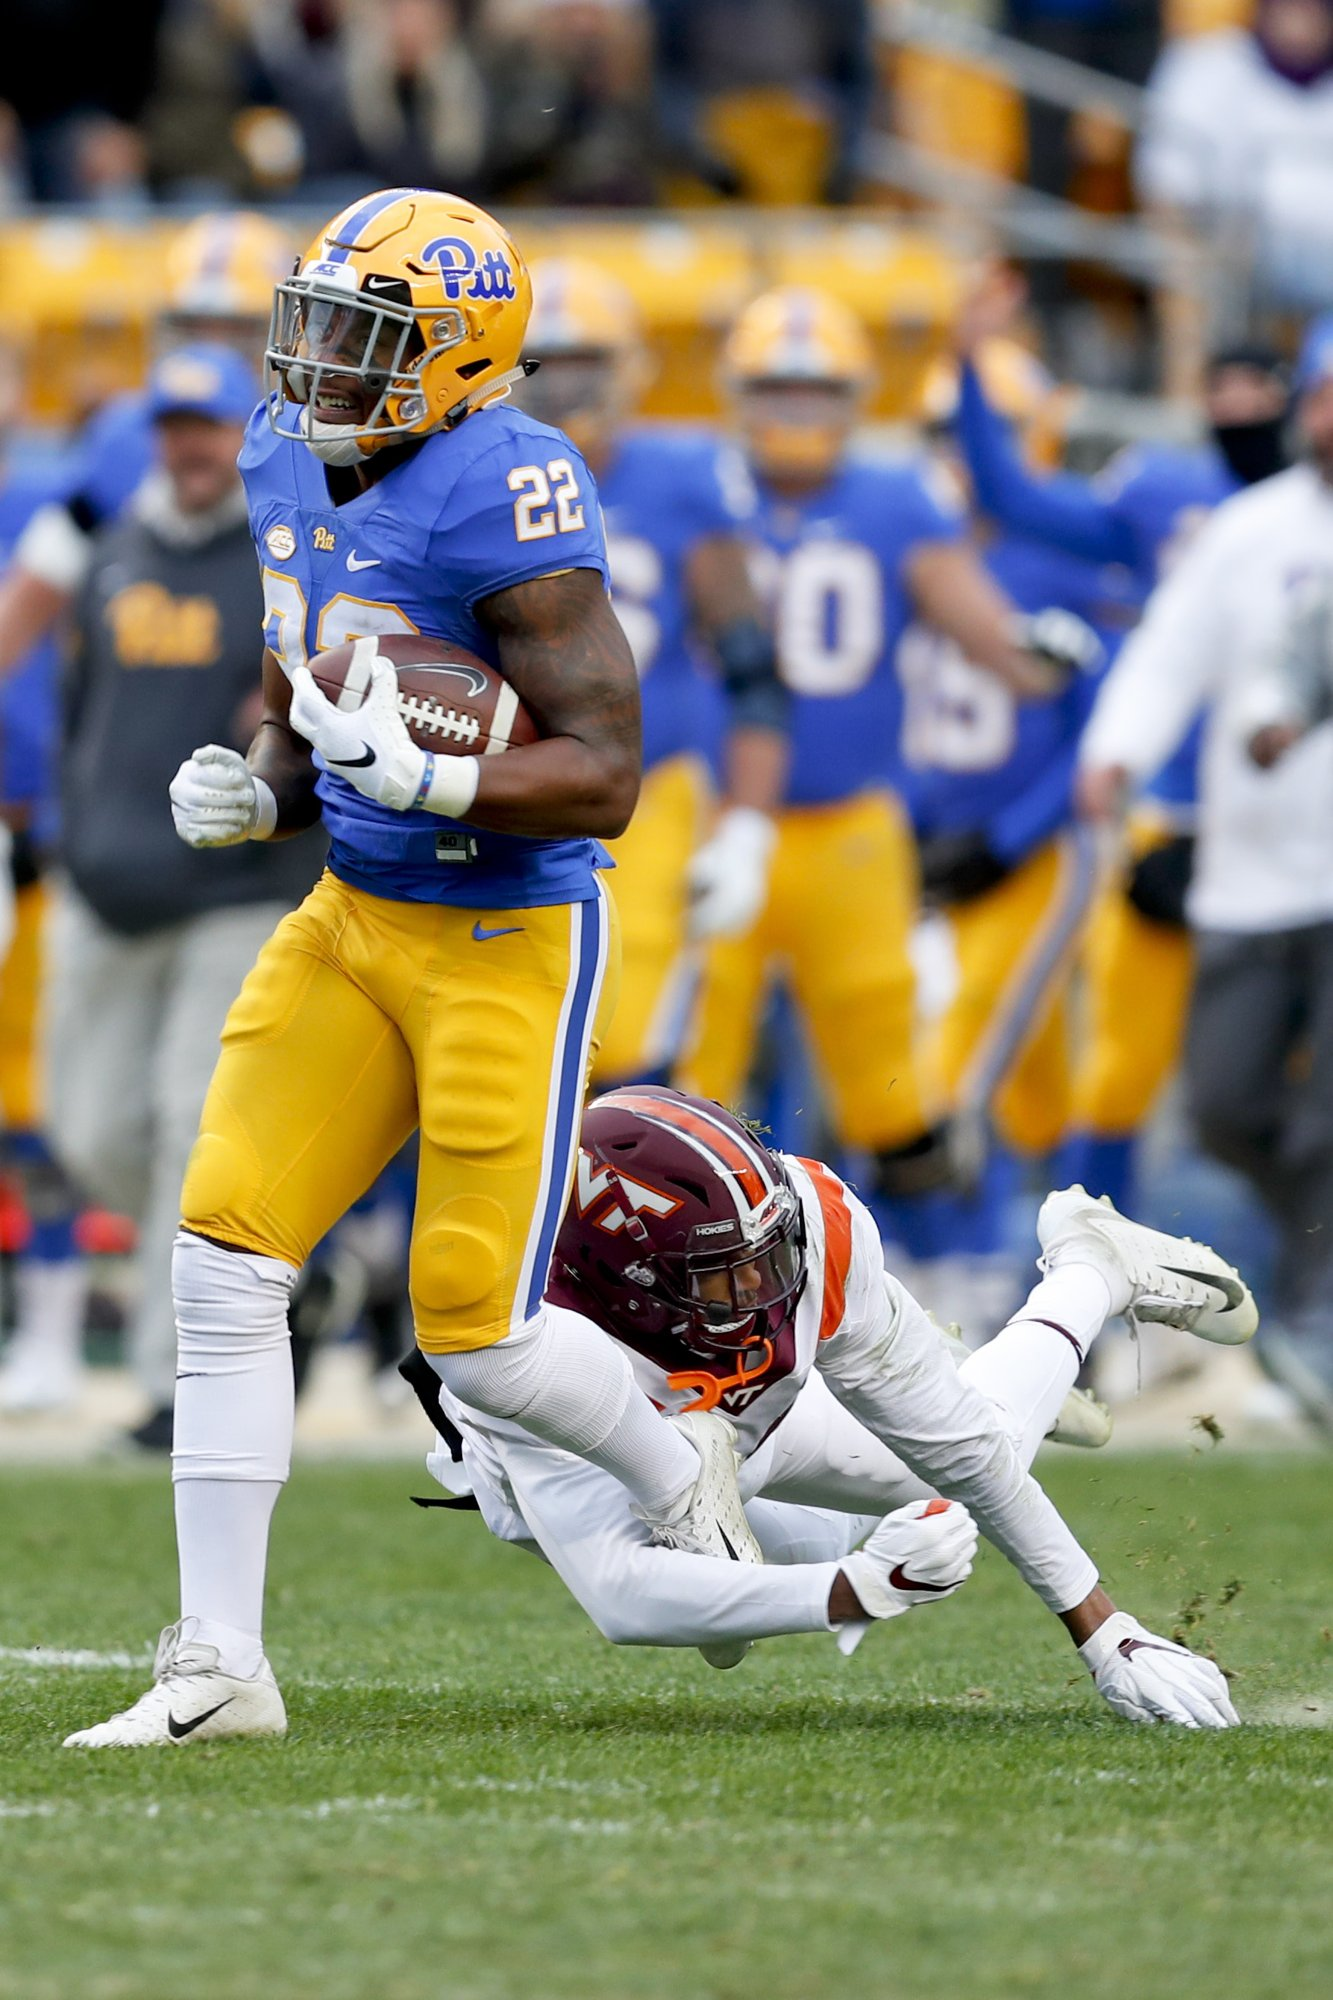 Pitt runs all over Virginia Tech in 52-22 thumping